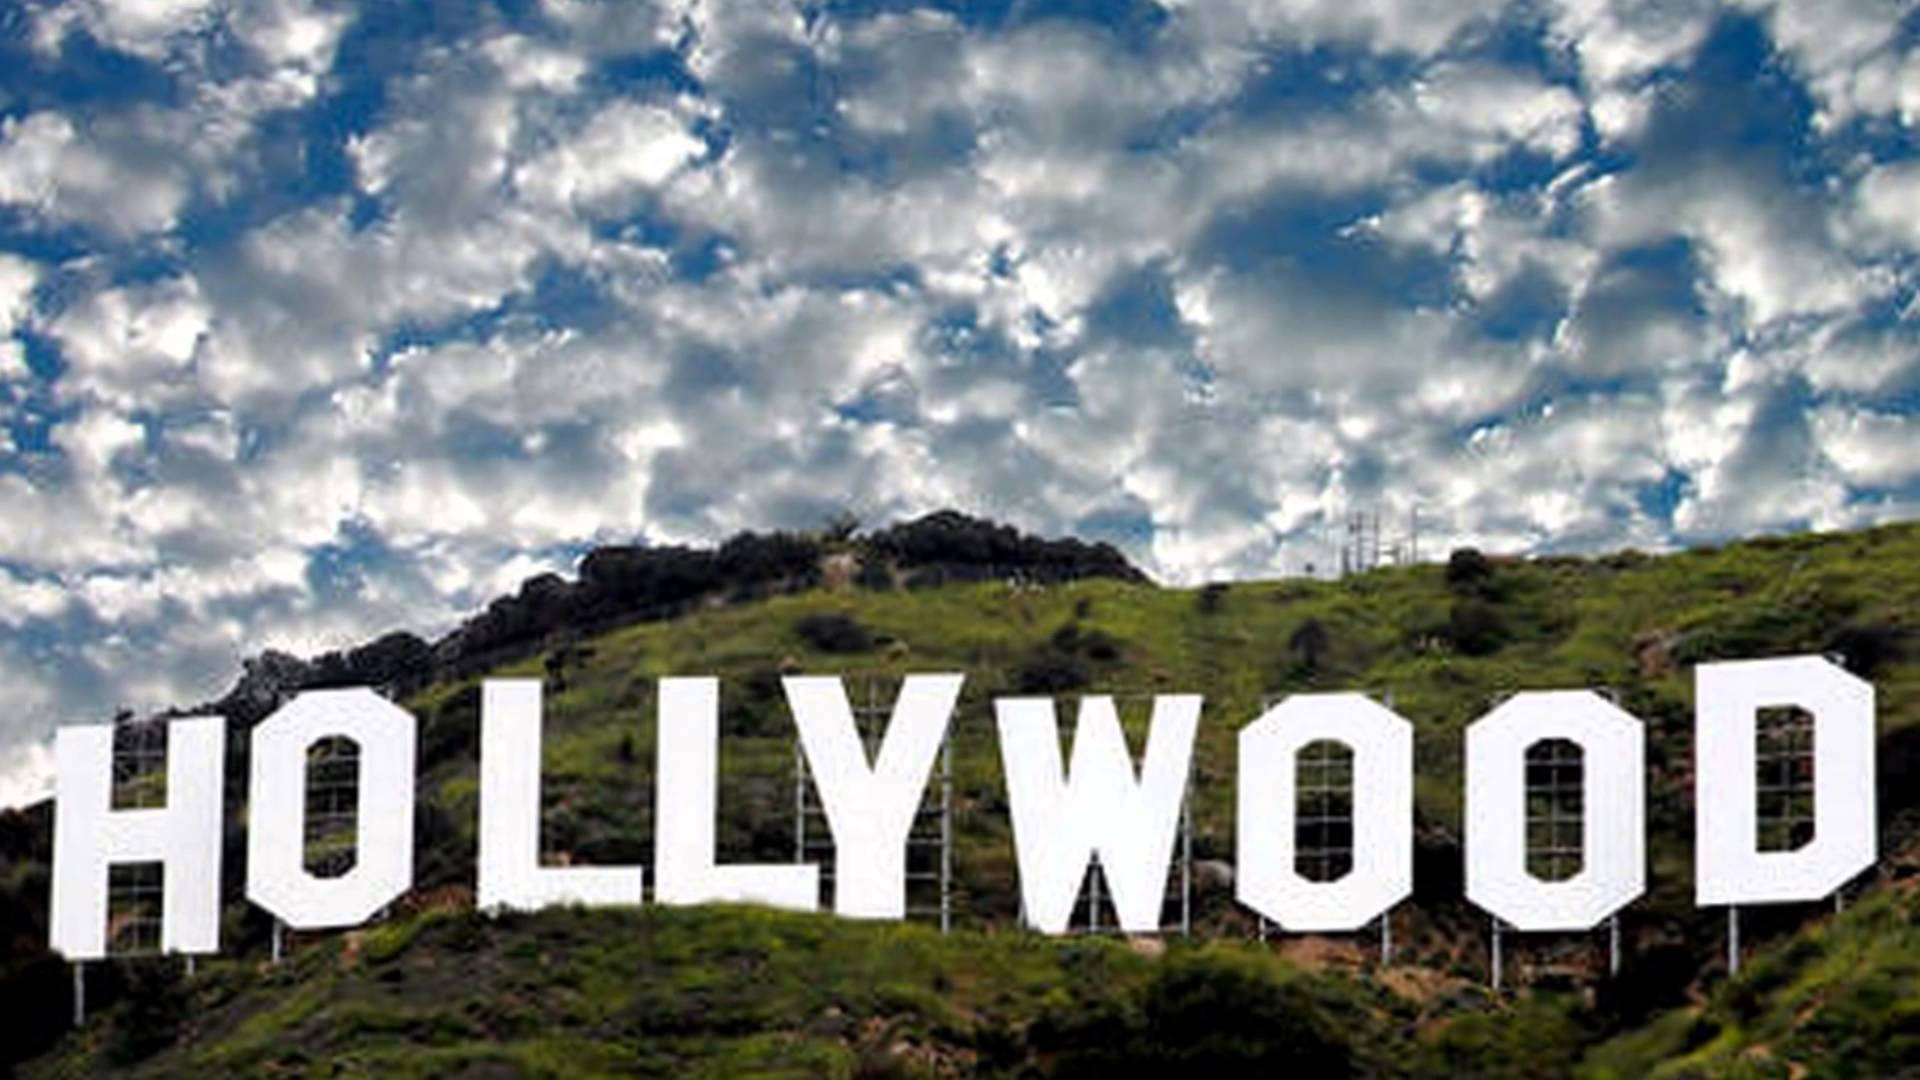 wallpapers a hollywood - photo #8